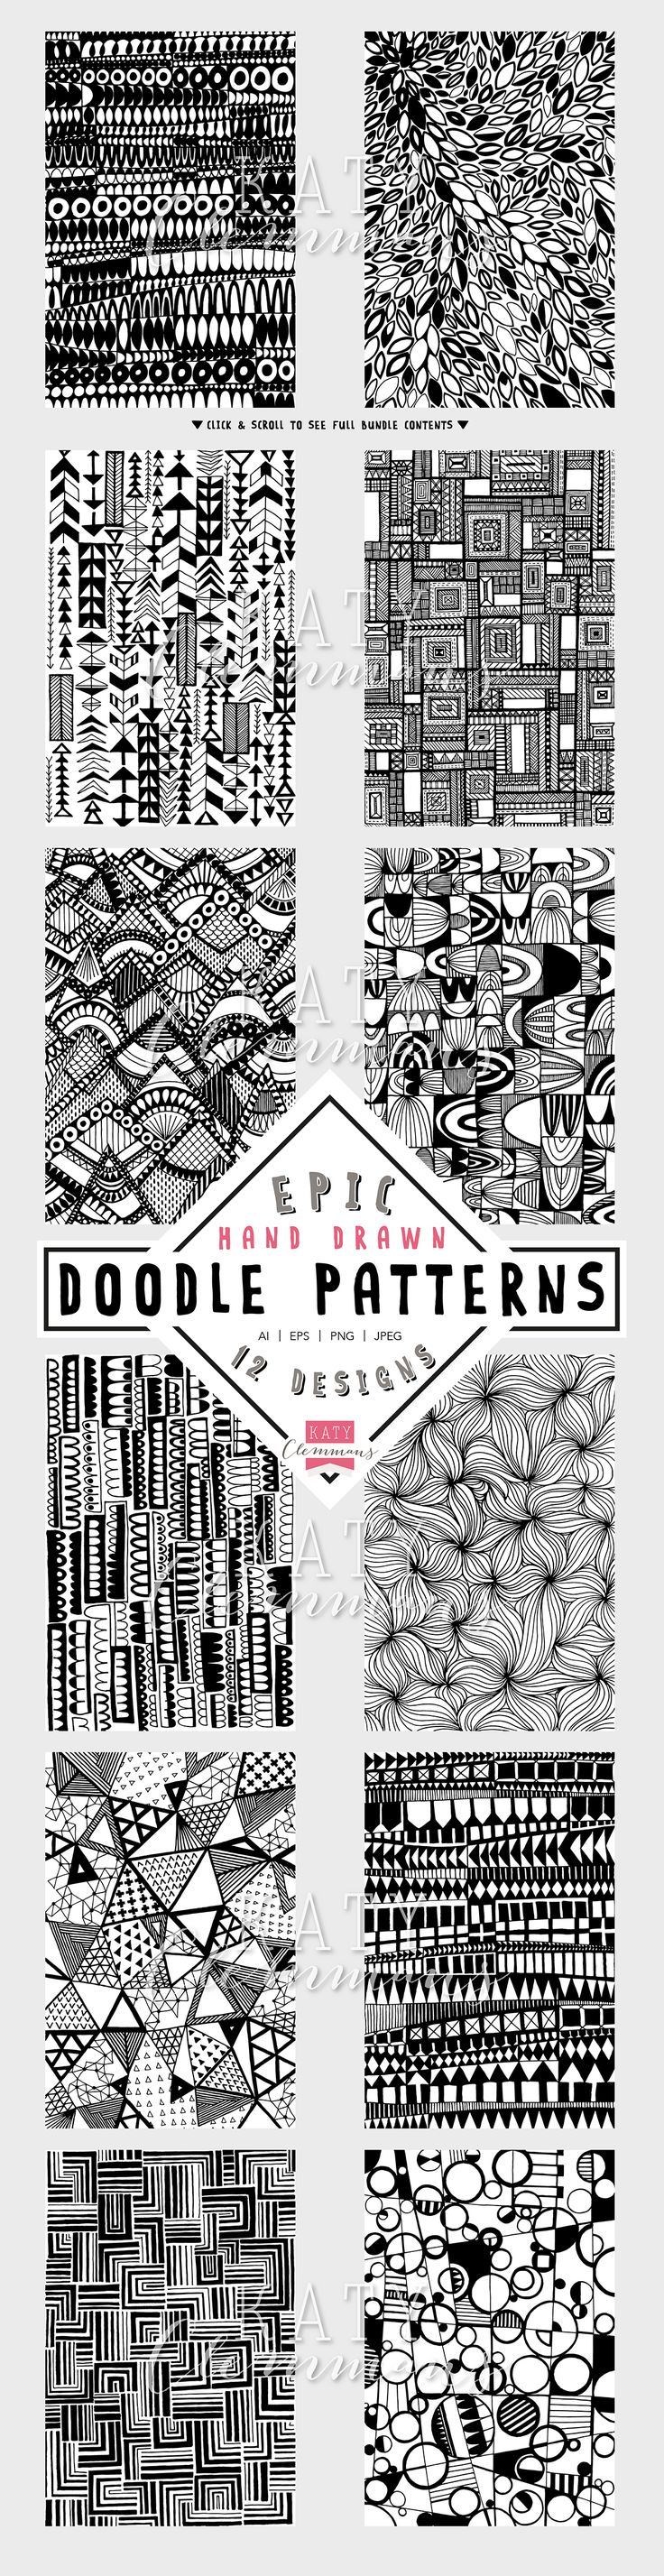 Epic Hand Drawn Doodle Patterns by Katy Clemmans on Creative Market